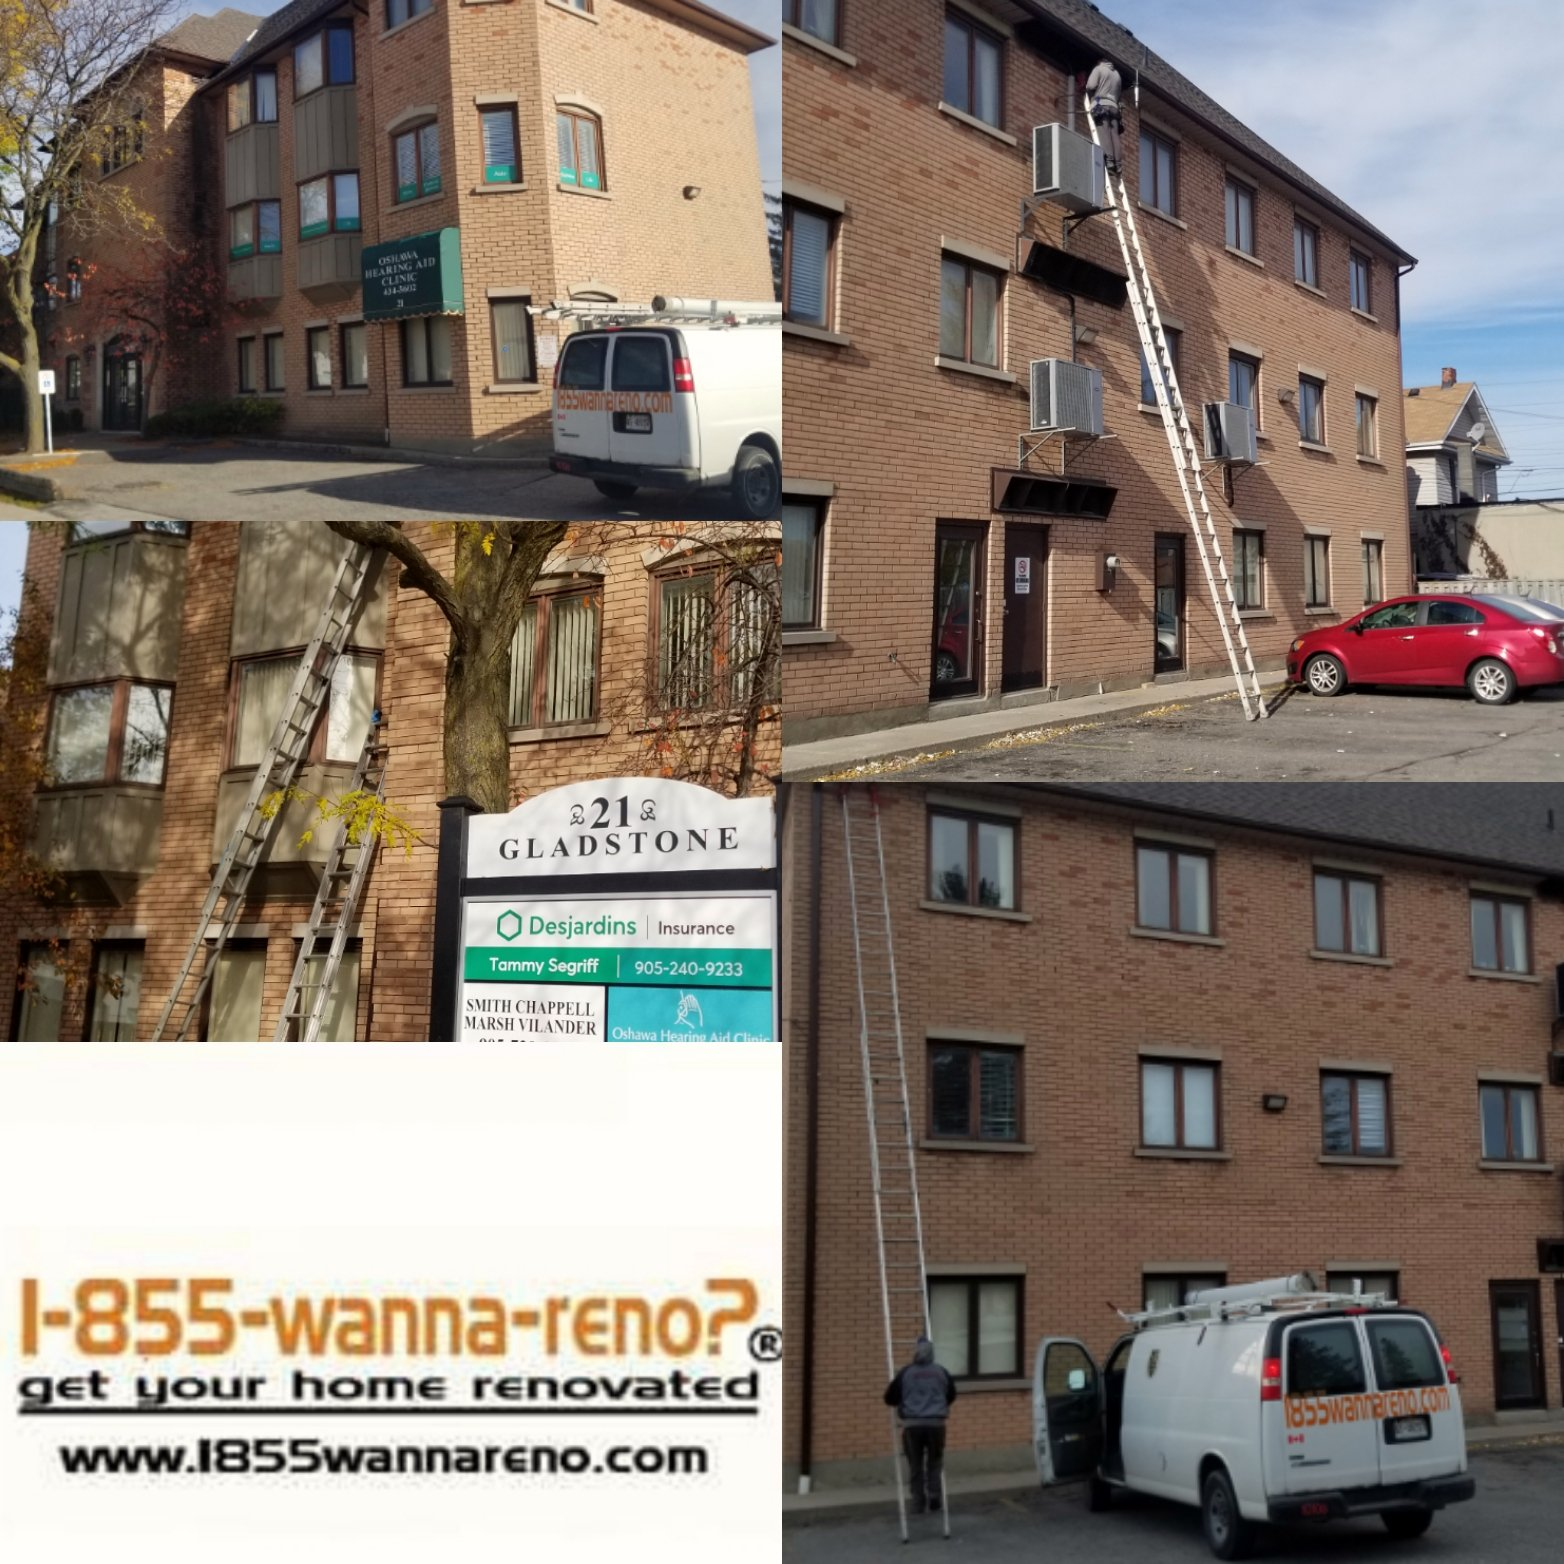 Eavestrough repair, cleaning, leafguard and downpipes installation in Oshawa